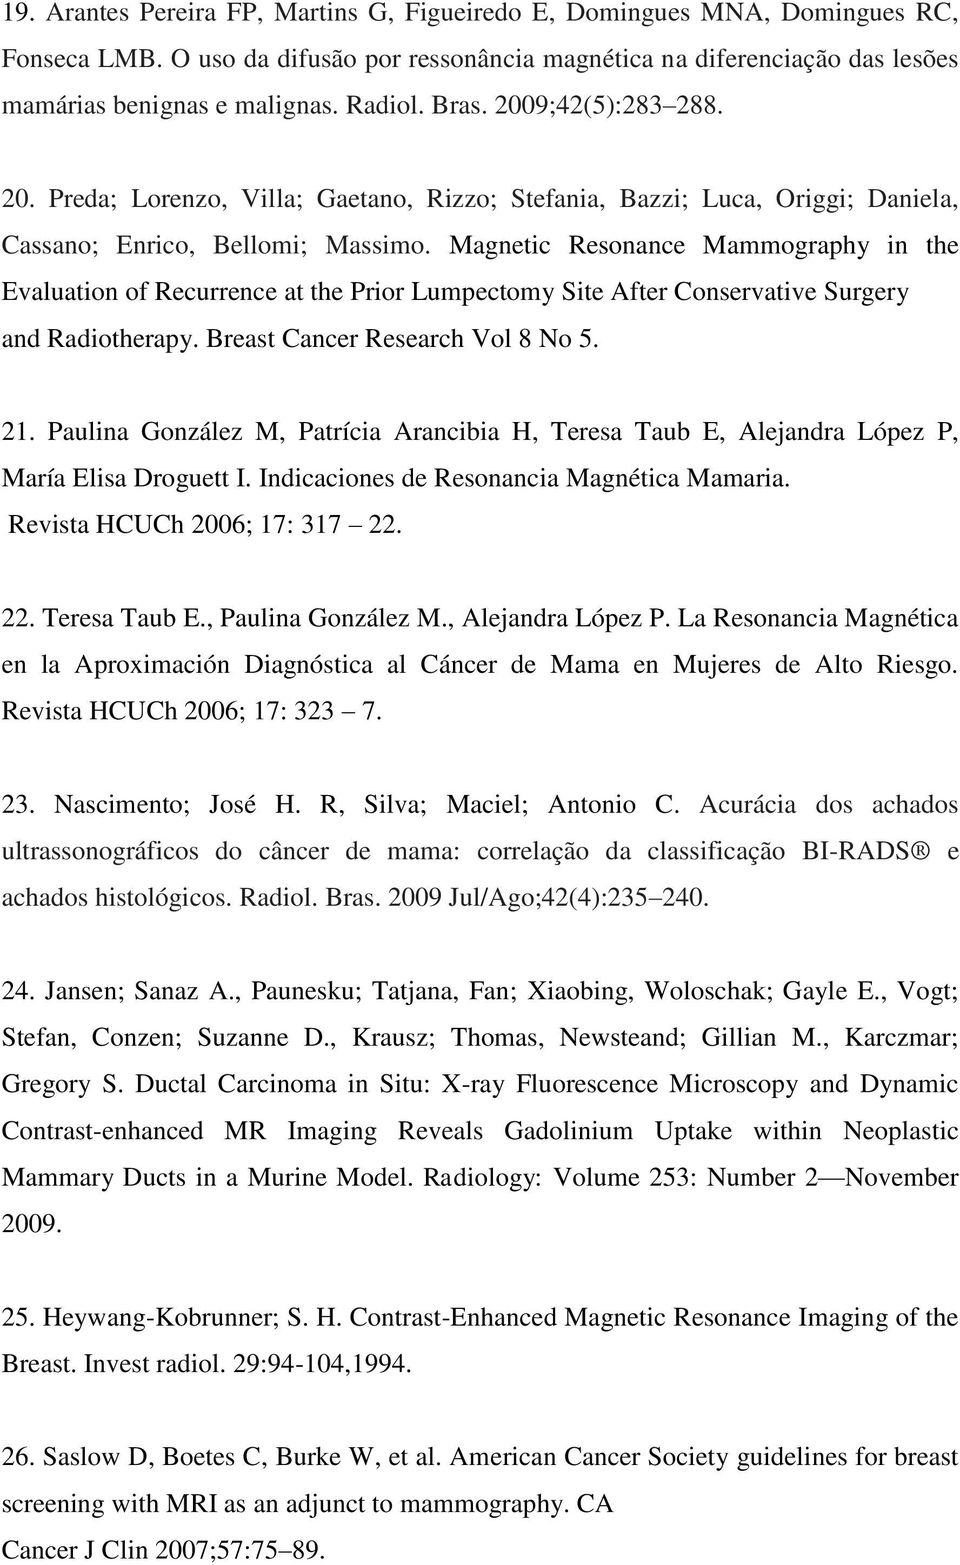 Magnetic Resonance Mammography in the Evaluation of Recurrence at the Prior Lumpectomy Site After Conservative Surgery and Radiotherapy. Breast Cancer Research Vol 8 No 5. 21.